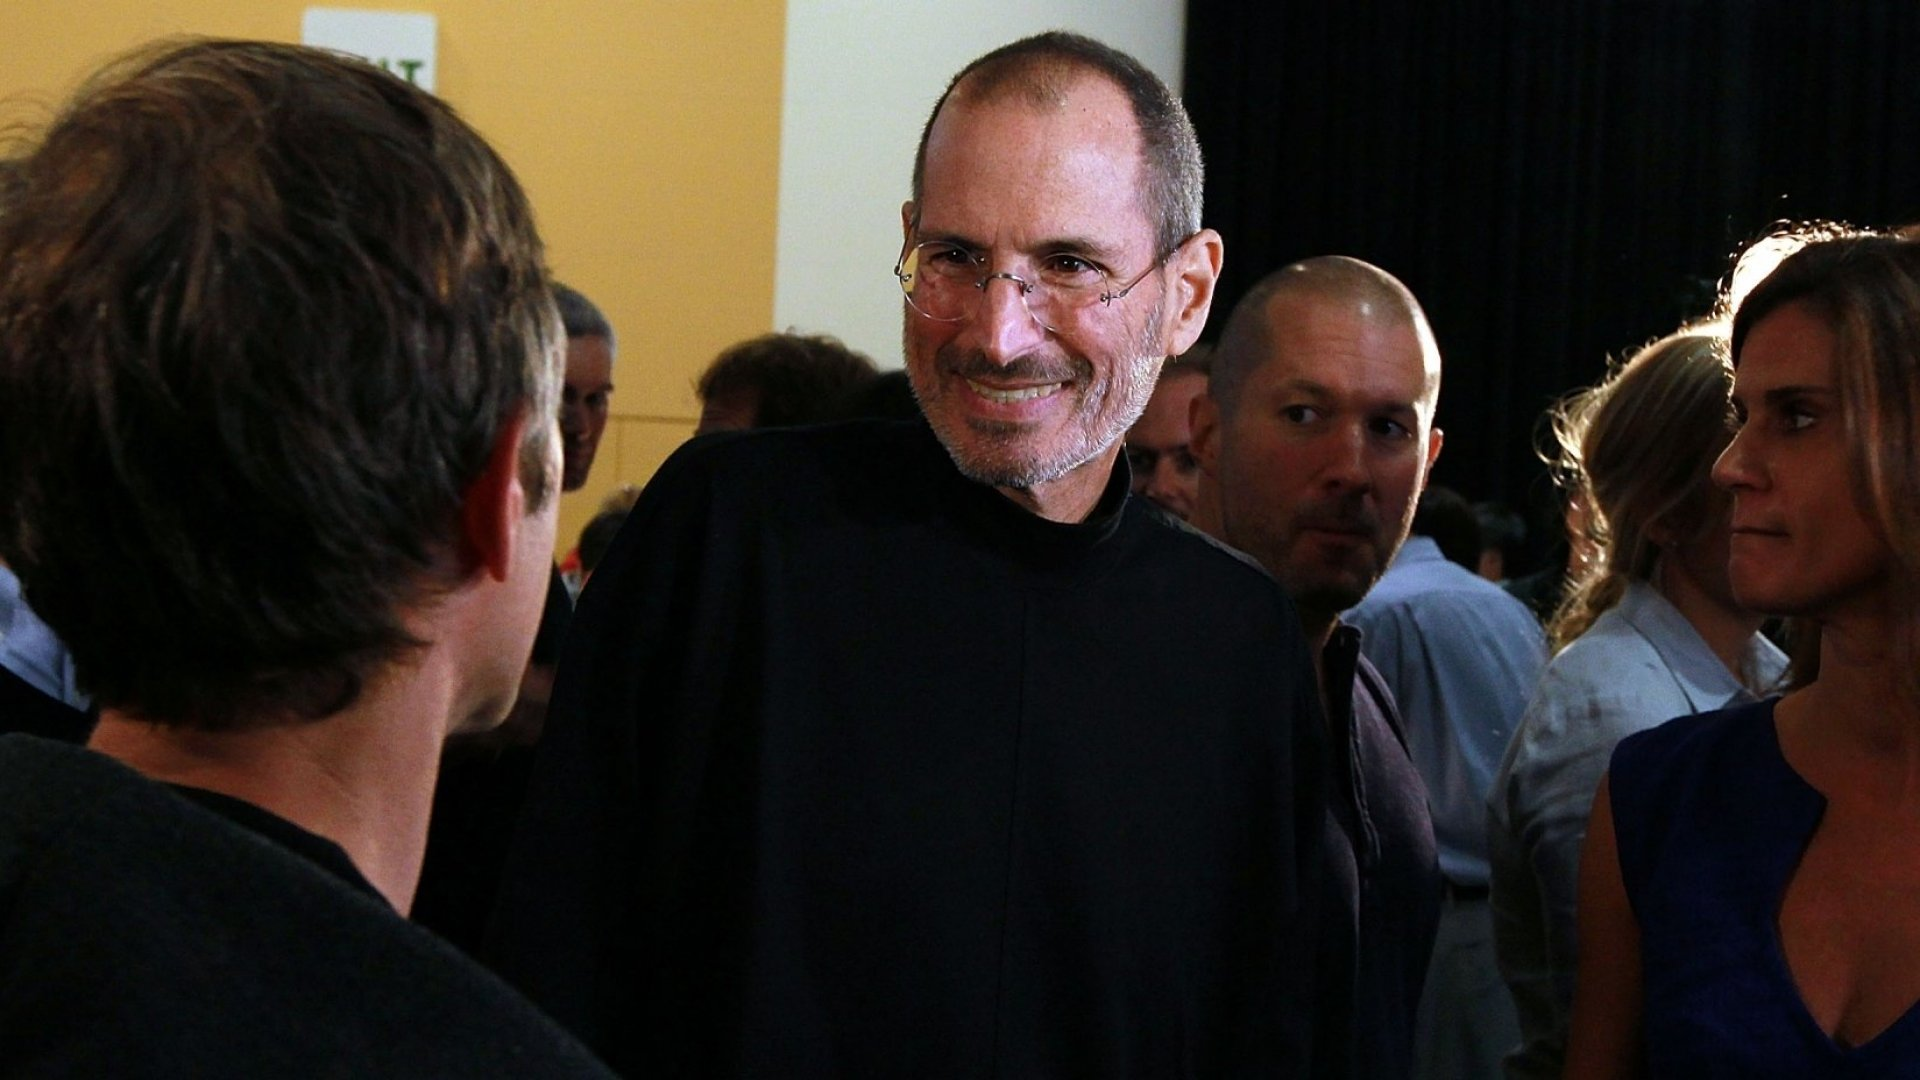 Inspiring, Informative, and Instructional: Steve Jobs Had All 3 Traits